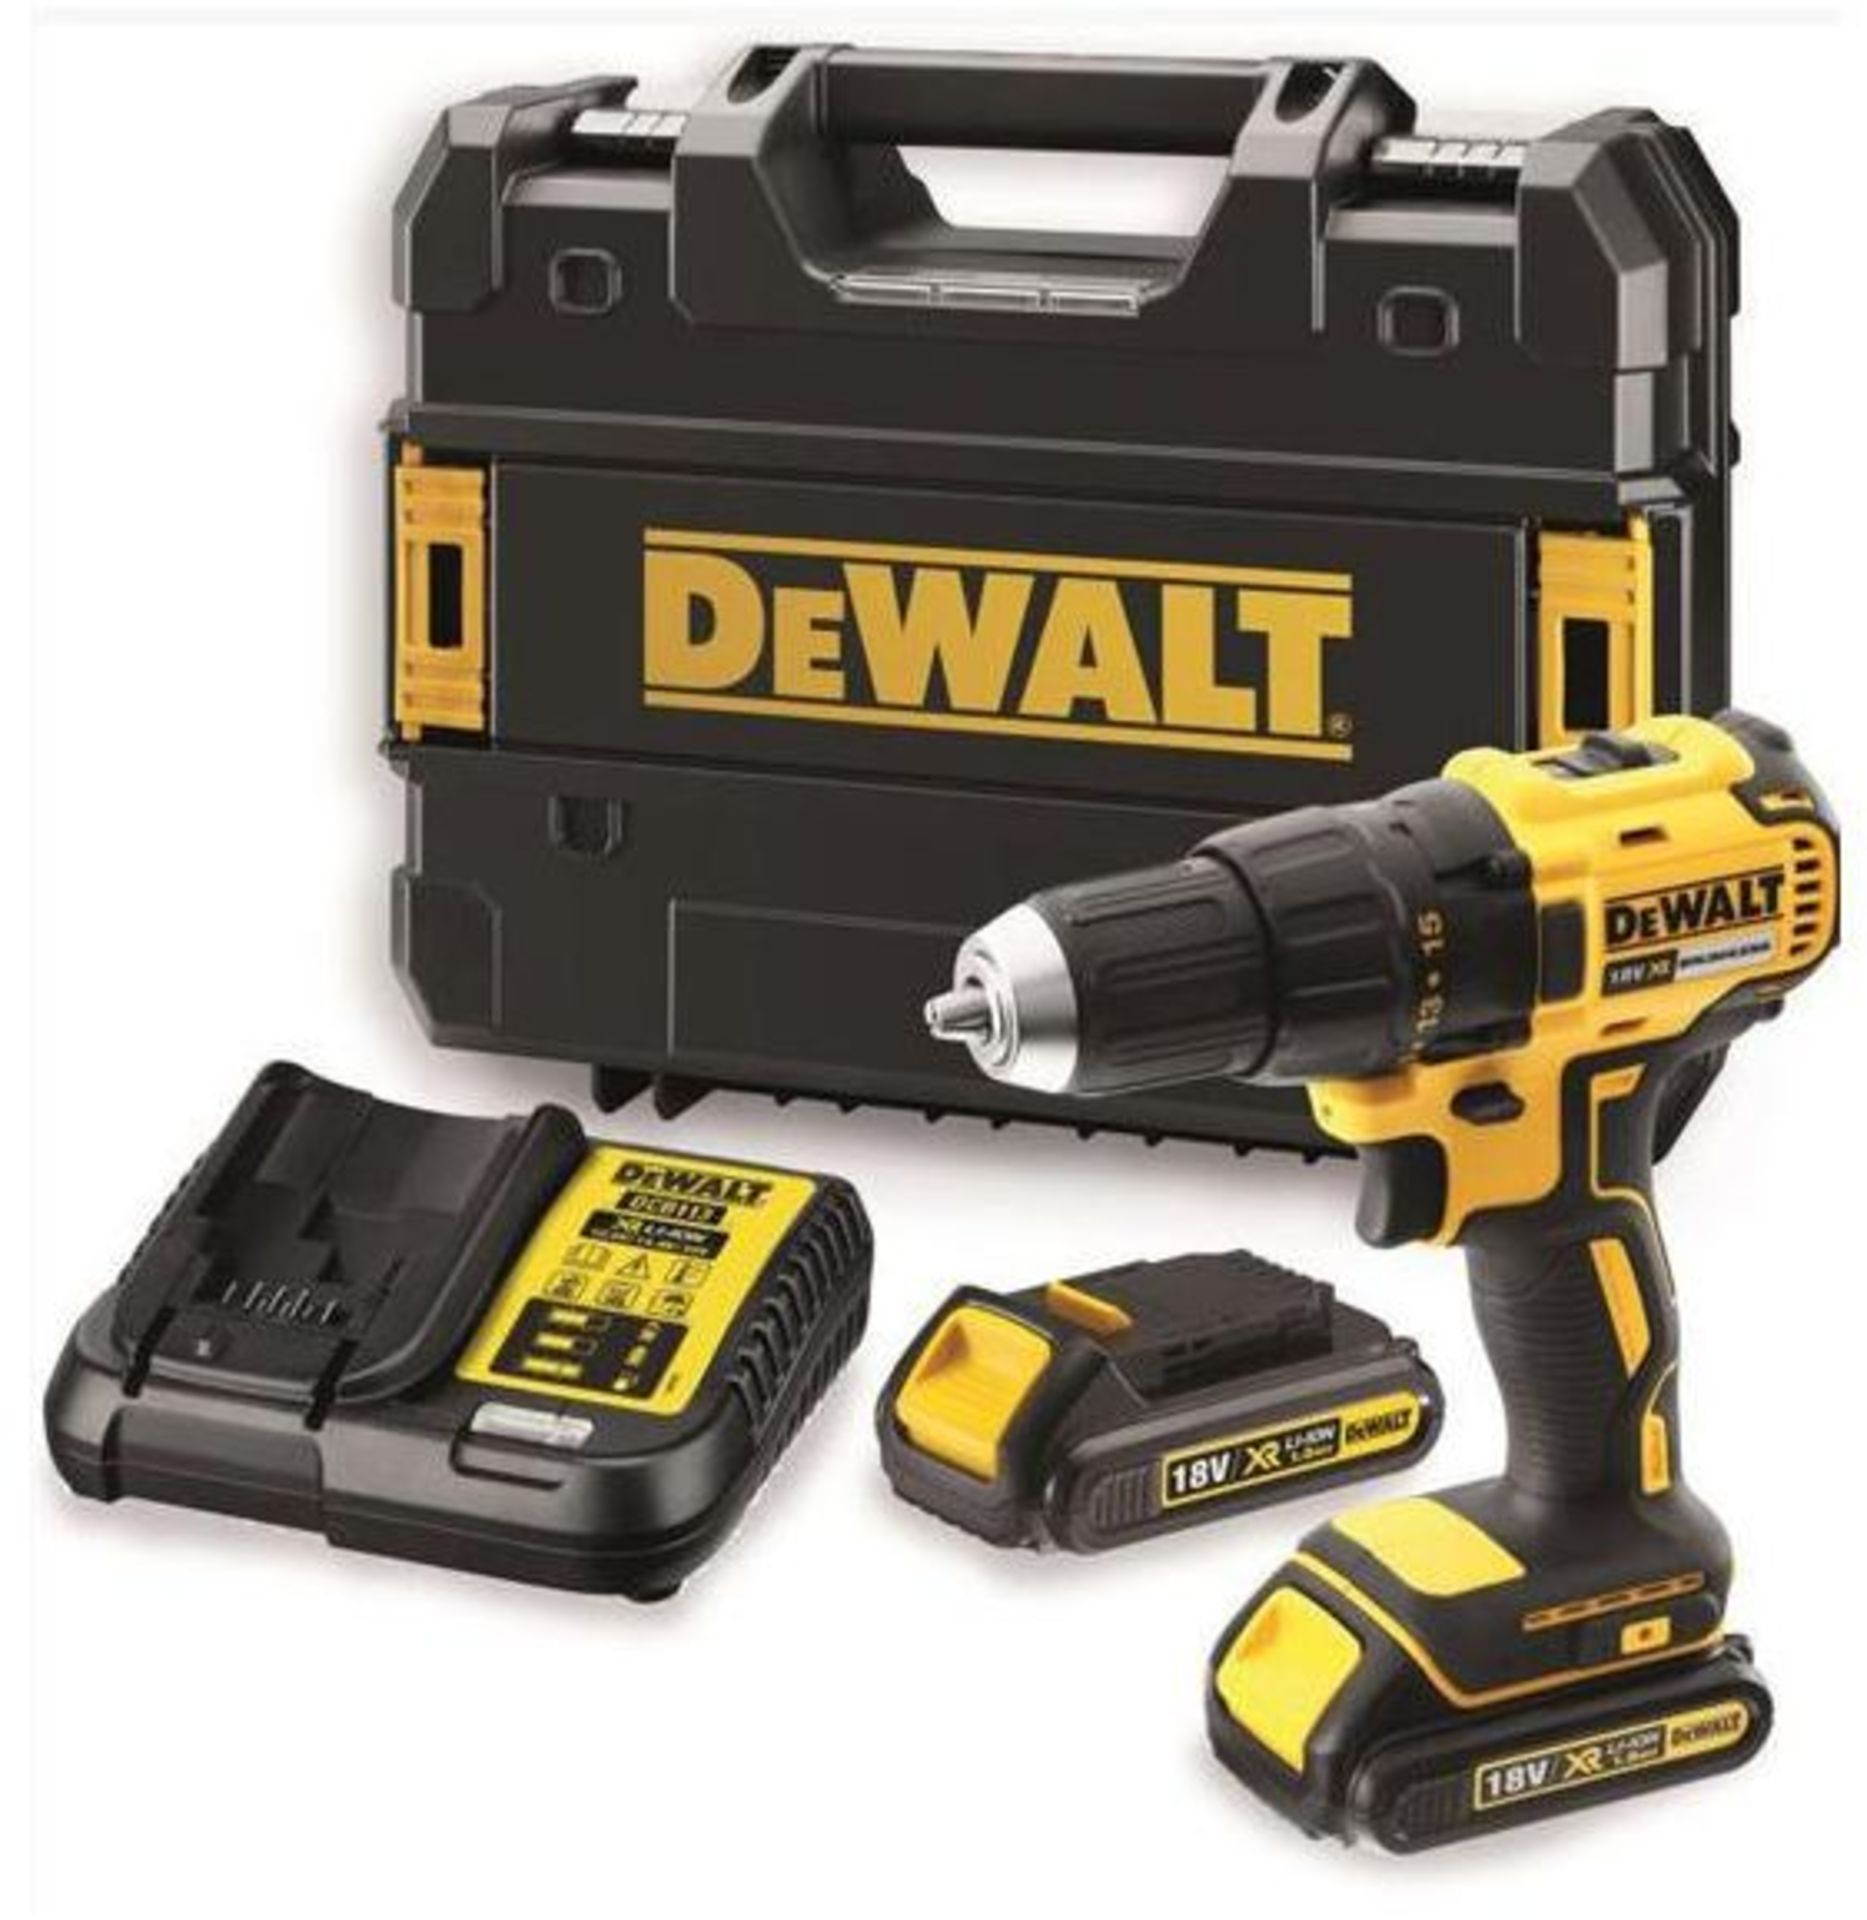 Lot 17004 - V Brand New DeWalt 18v Brushless Drill Driver + 2x Batteries + Charger + Case